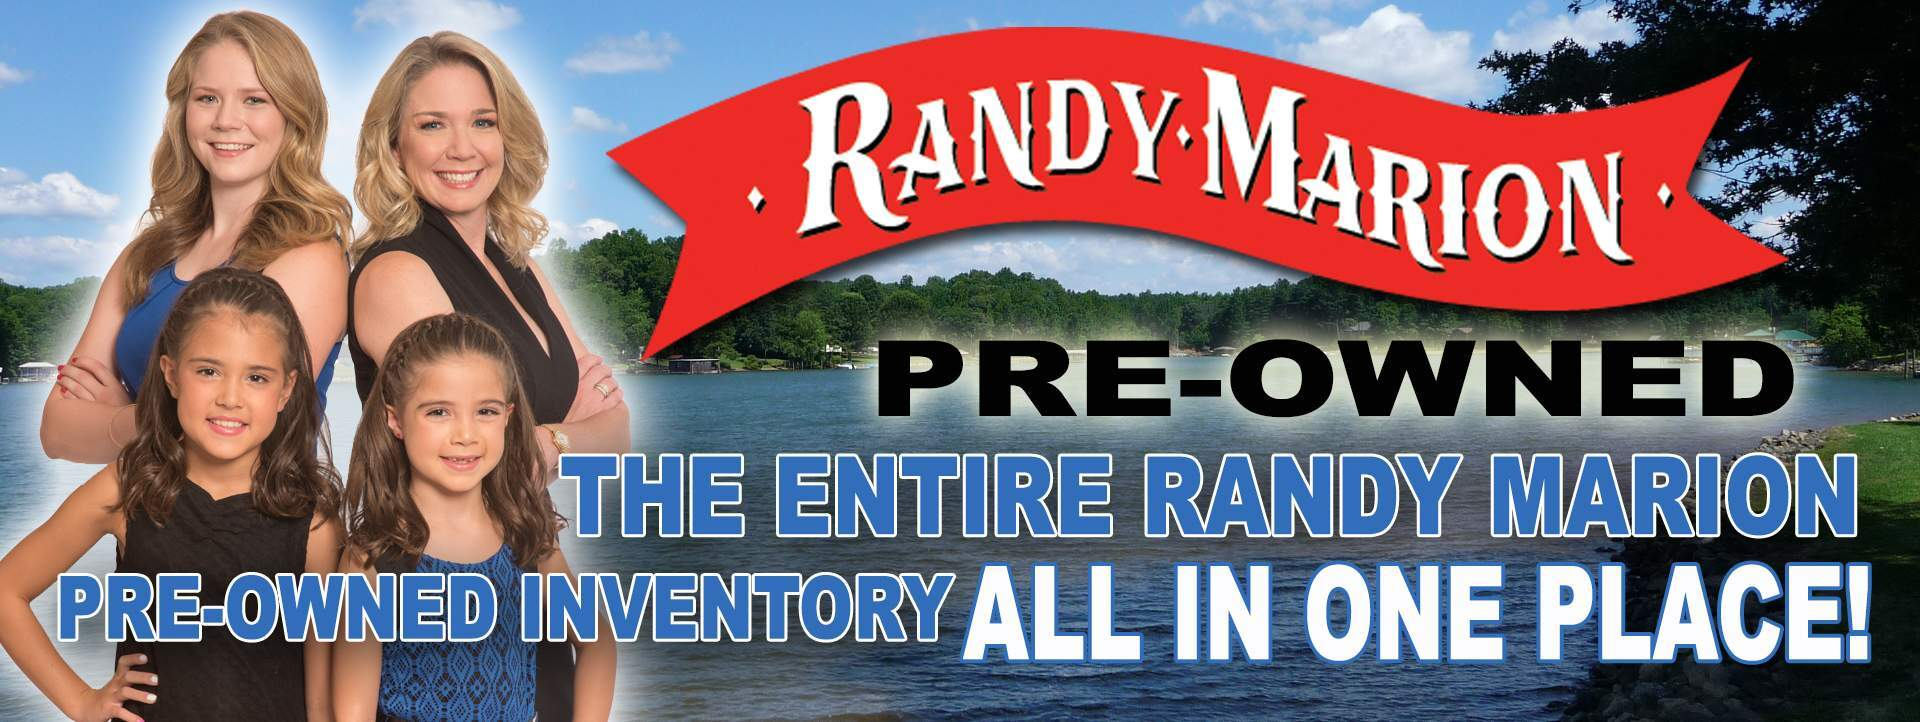 Randy Marion Pre-Owned